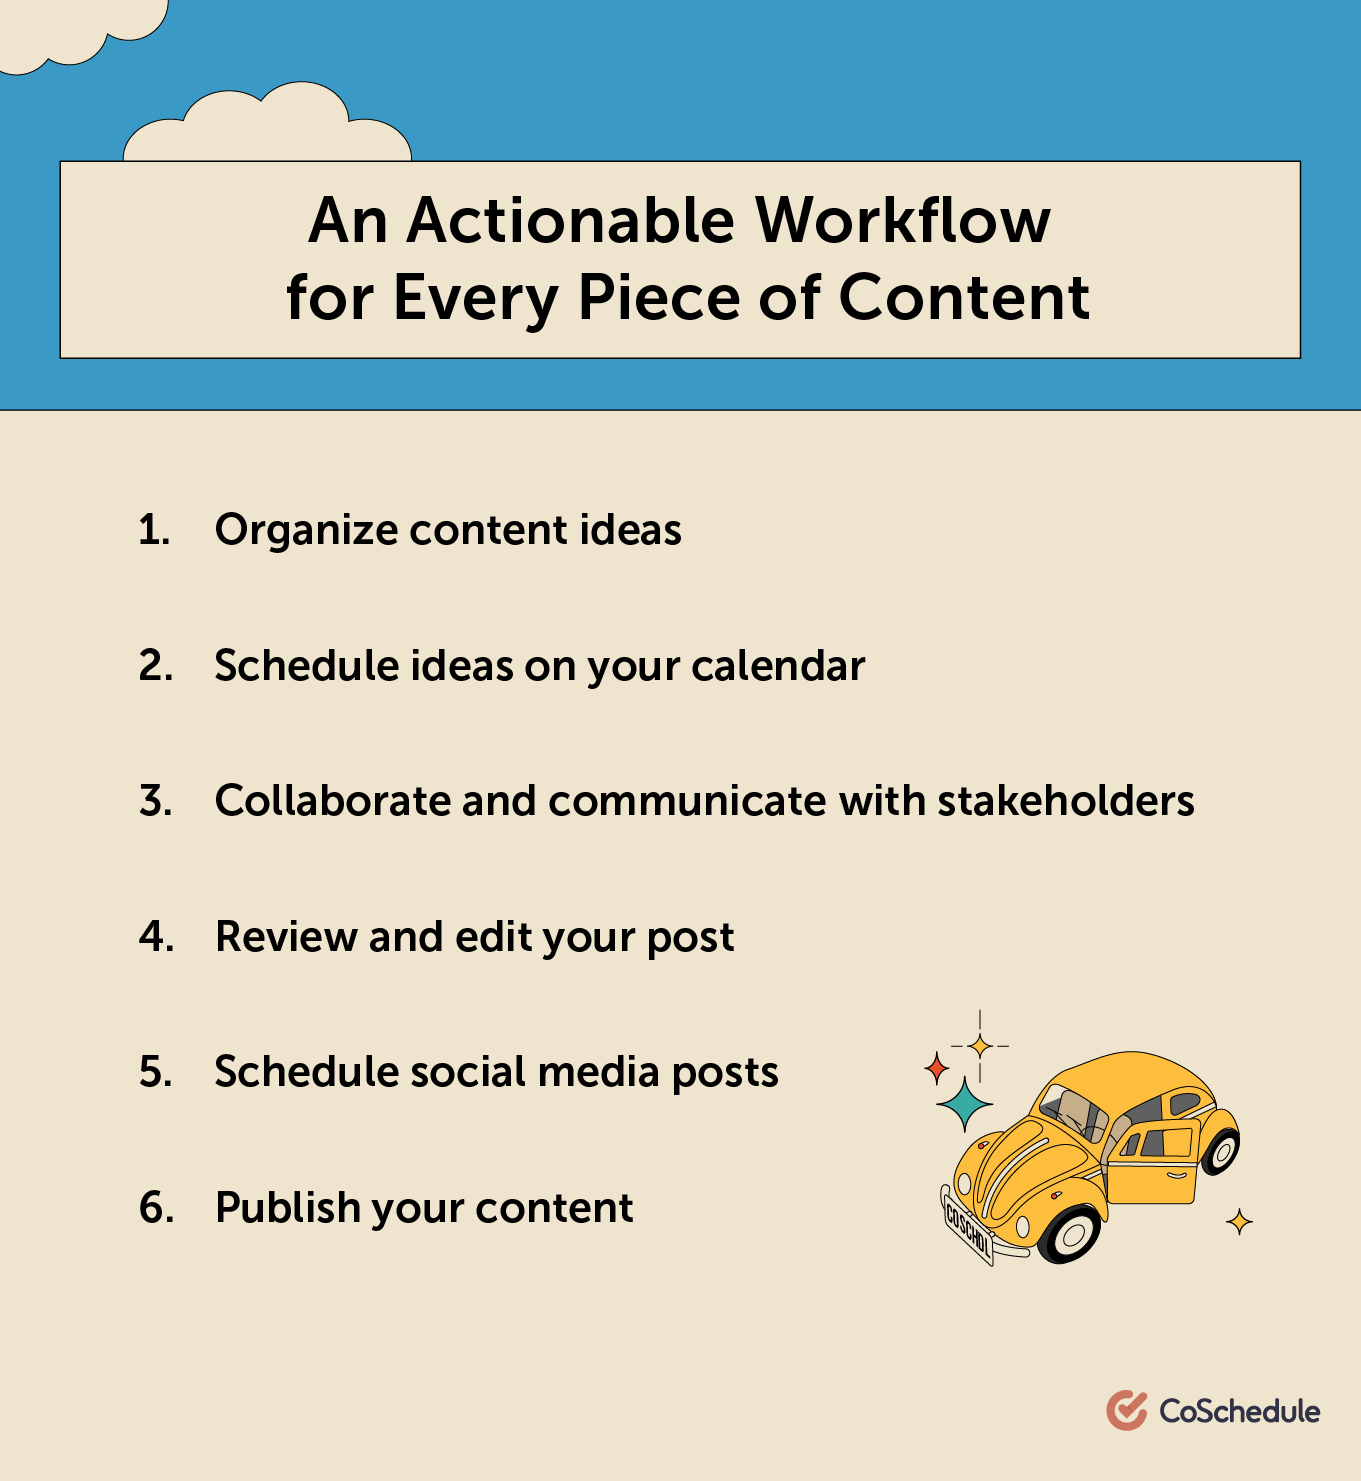 Create an actionable workflow for every piece of content